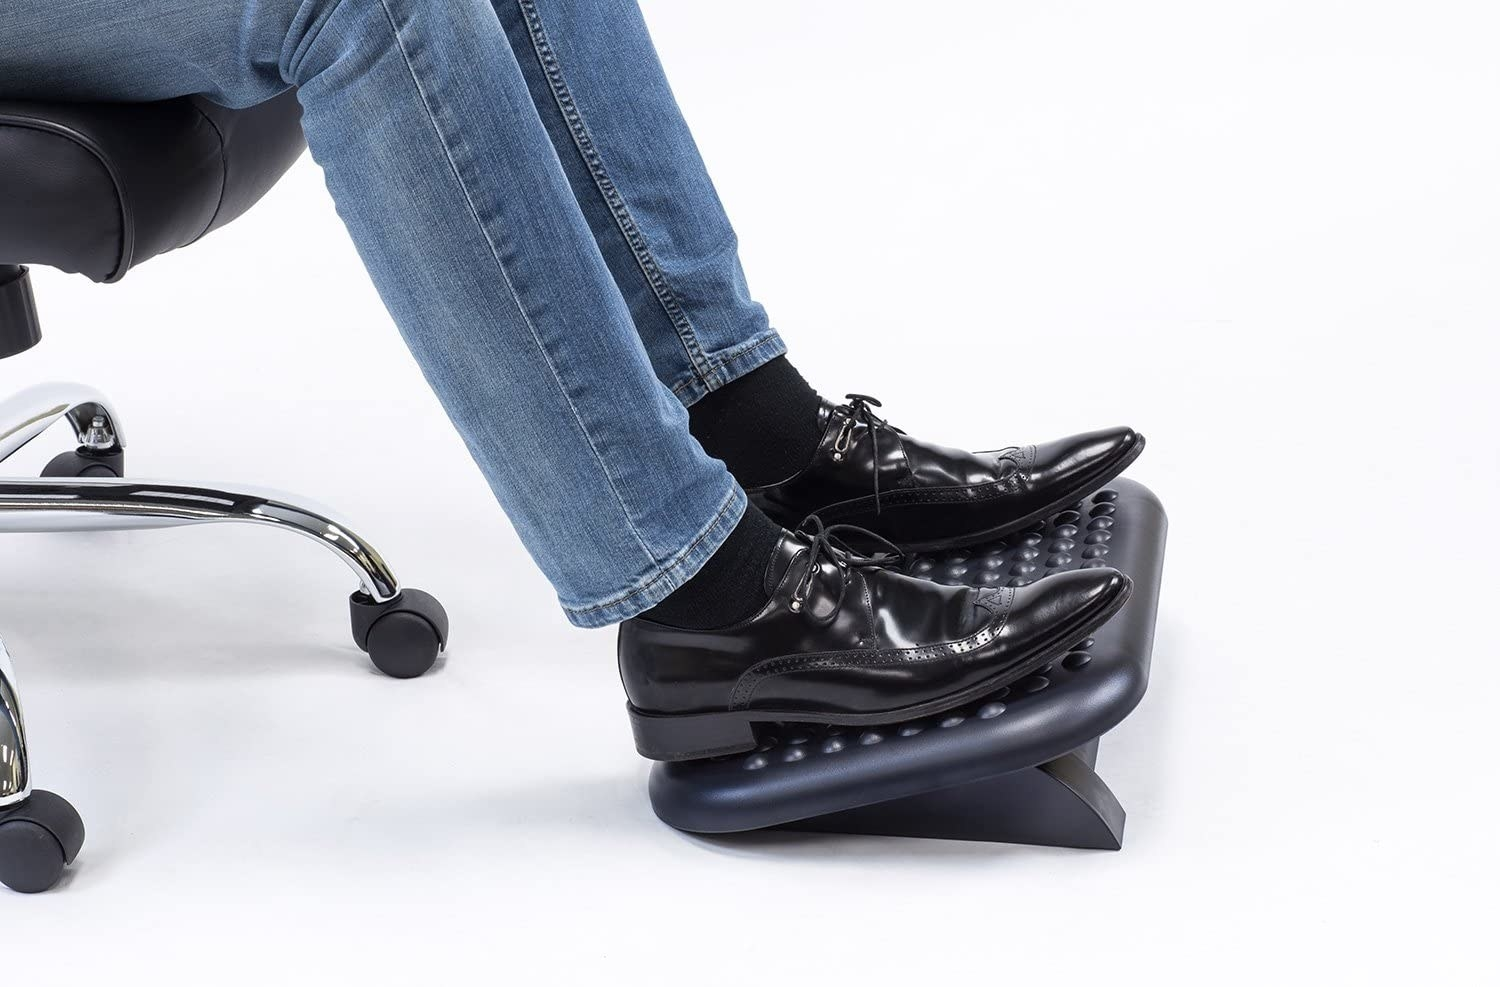 A person placing their feet on a foot rest that has a bumpy surface